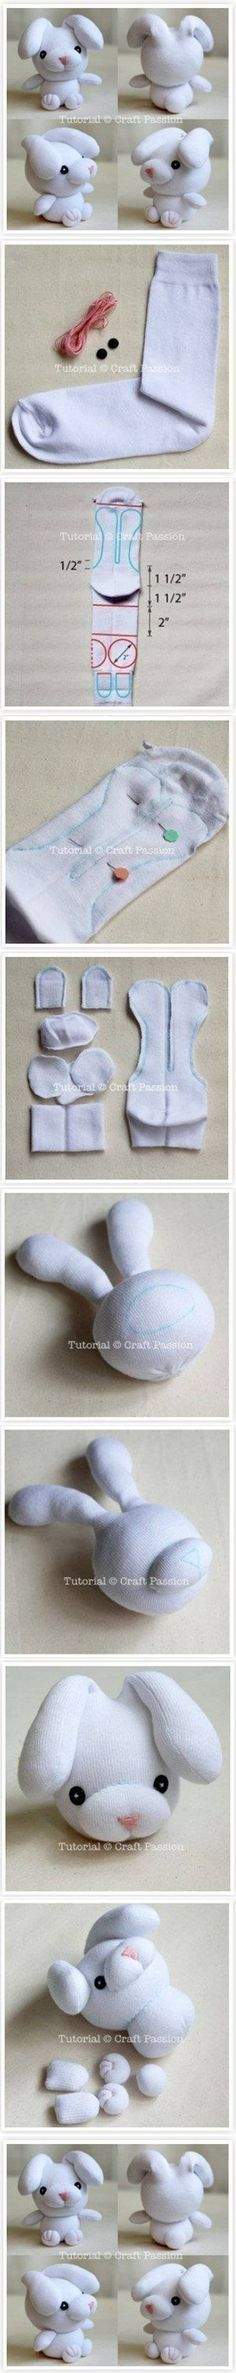 "<input+type=""hidden""+value=""""+data-frizzlyPostContainer=""""+data-frizzlyPostUrl=""http://www.usefuldiy.com/diy-sew-sock-bunny/""+data-frizzlyPostTitle=""DIY+Sew+Sock+Bunny""+data-frizzlyHoverContainer=""""><p>>>>+Craft+Tutorials+More+Free+Instructions+Free+Tutorials+More+Craft+Tutorials</p>"